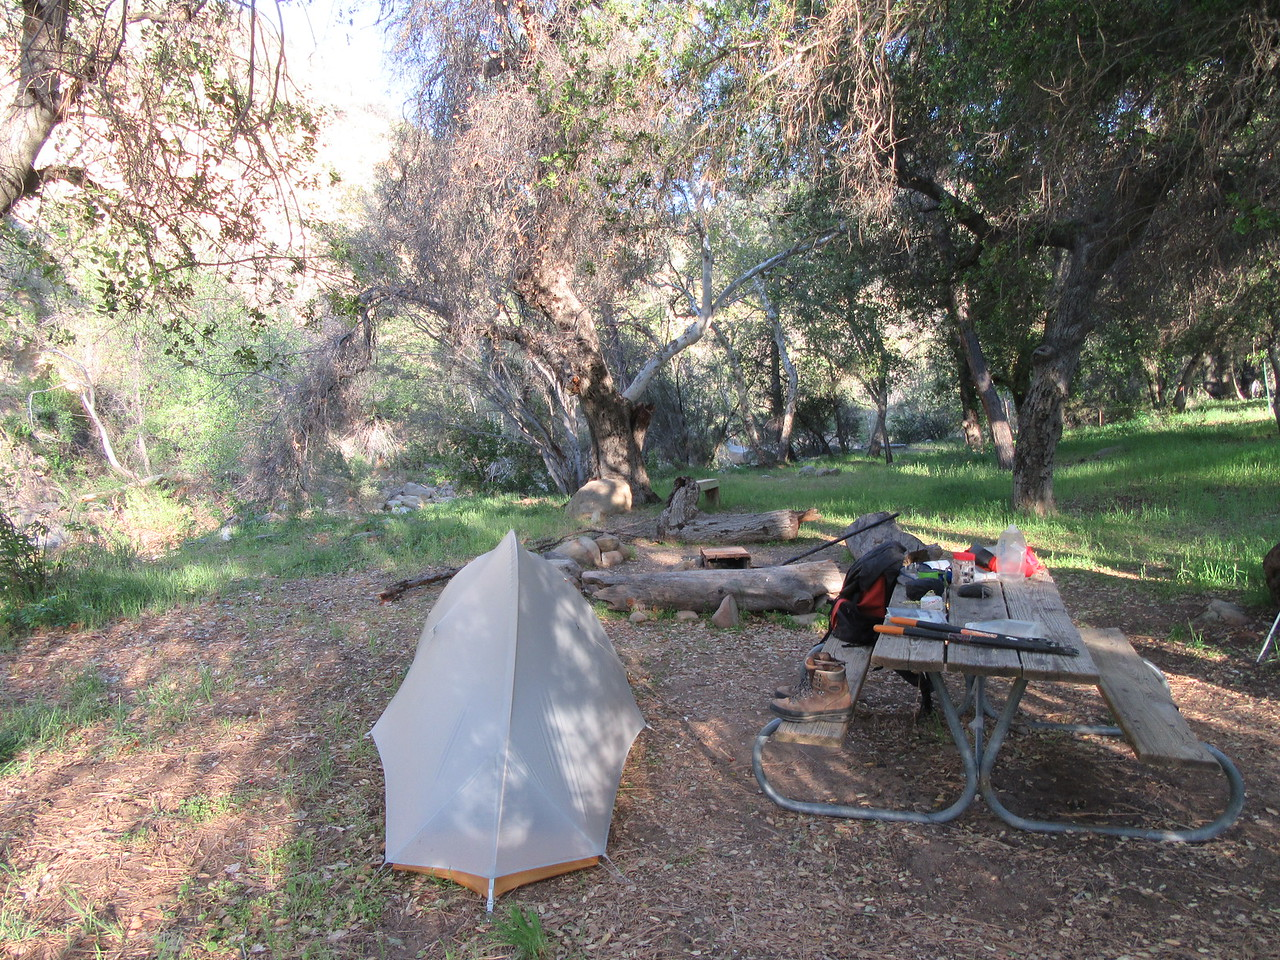 My camp at South Fork Station.